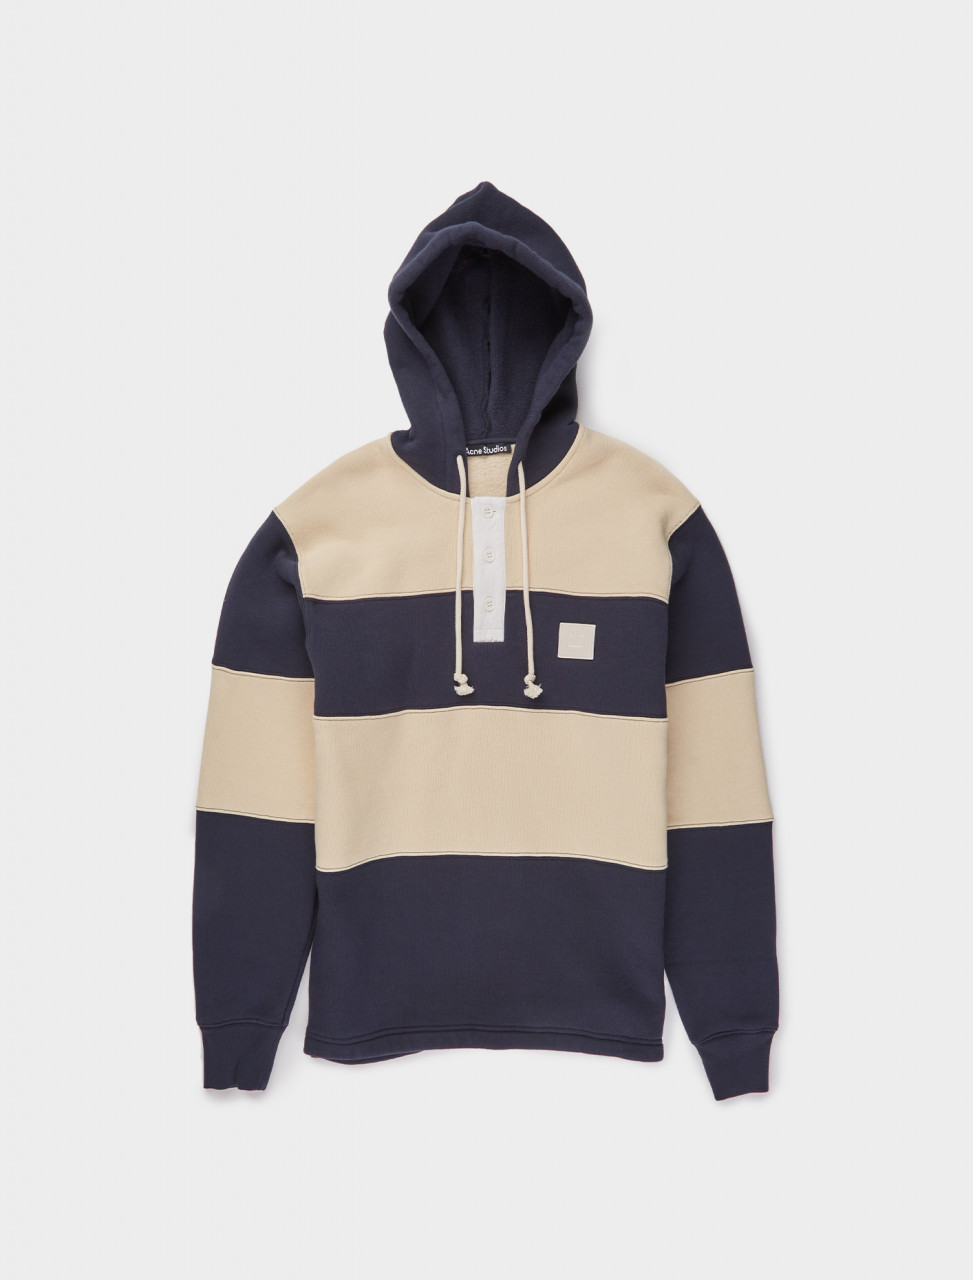 110-CI0044-BG3 ACNE STUDIOS HOODED RUGBY SWEATSHIRT NAVY